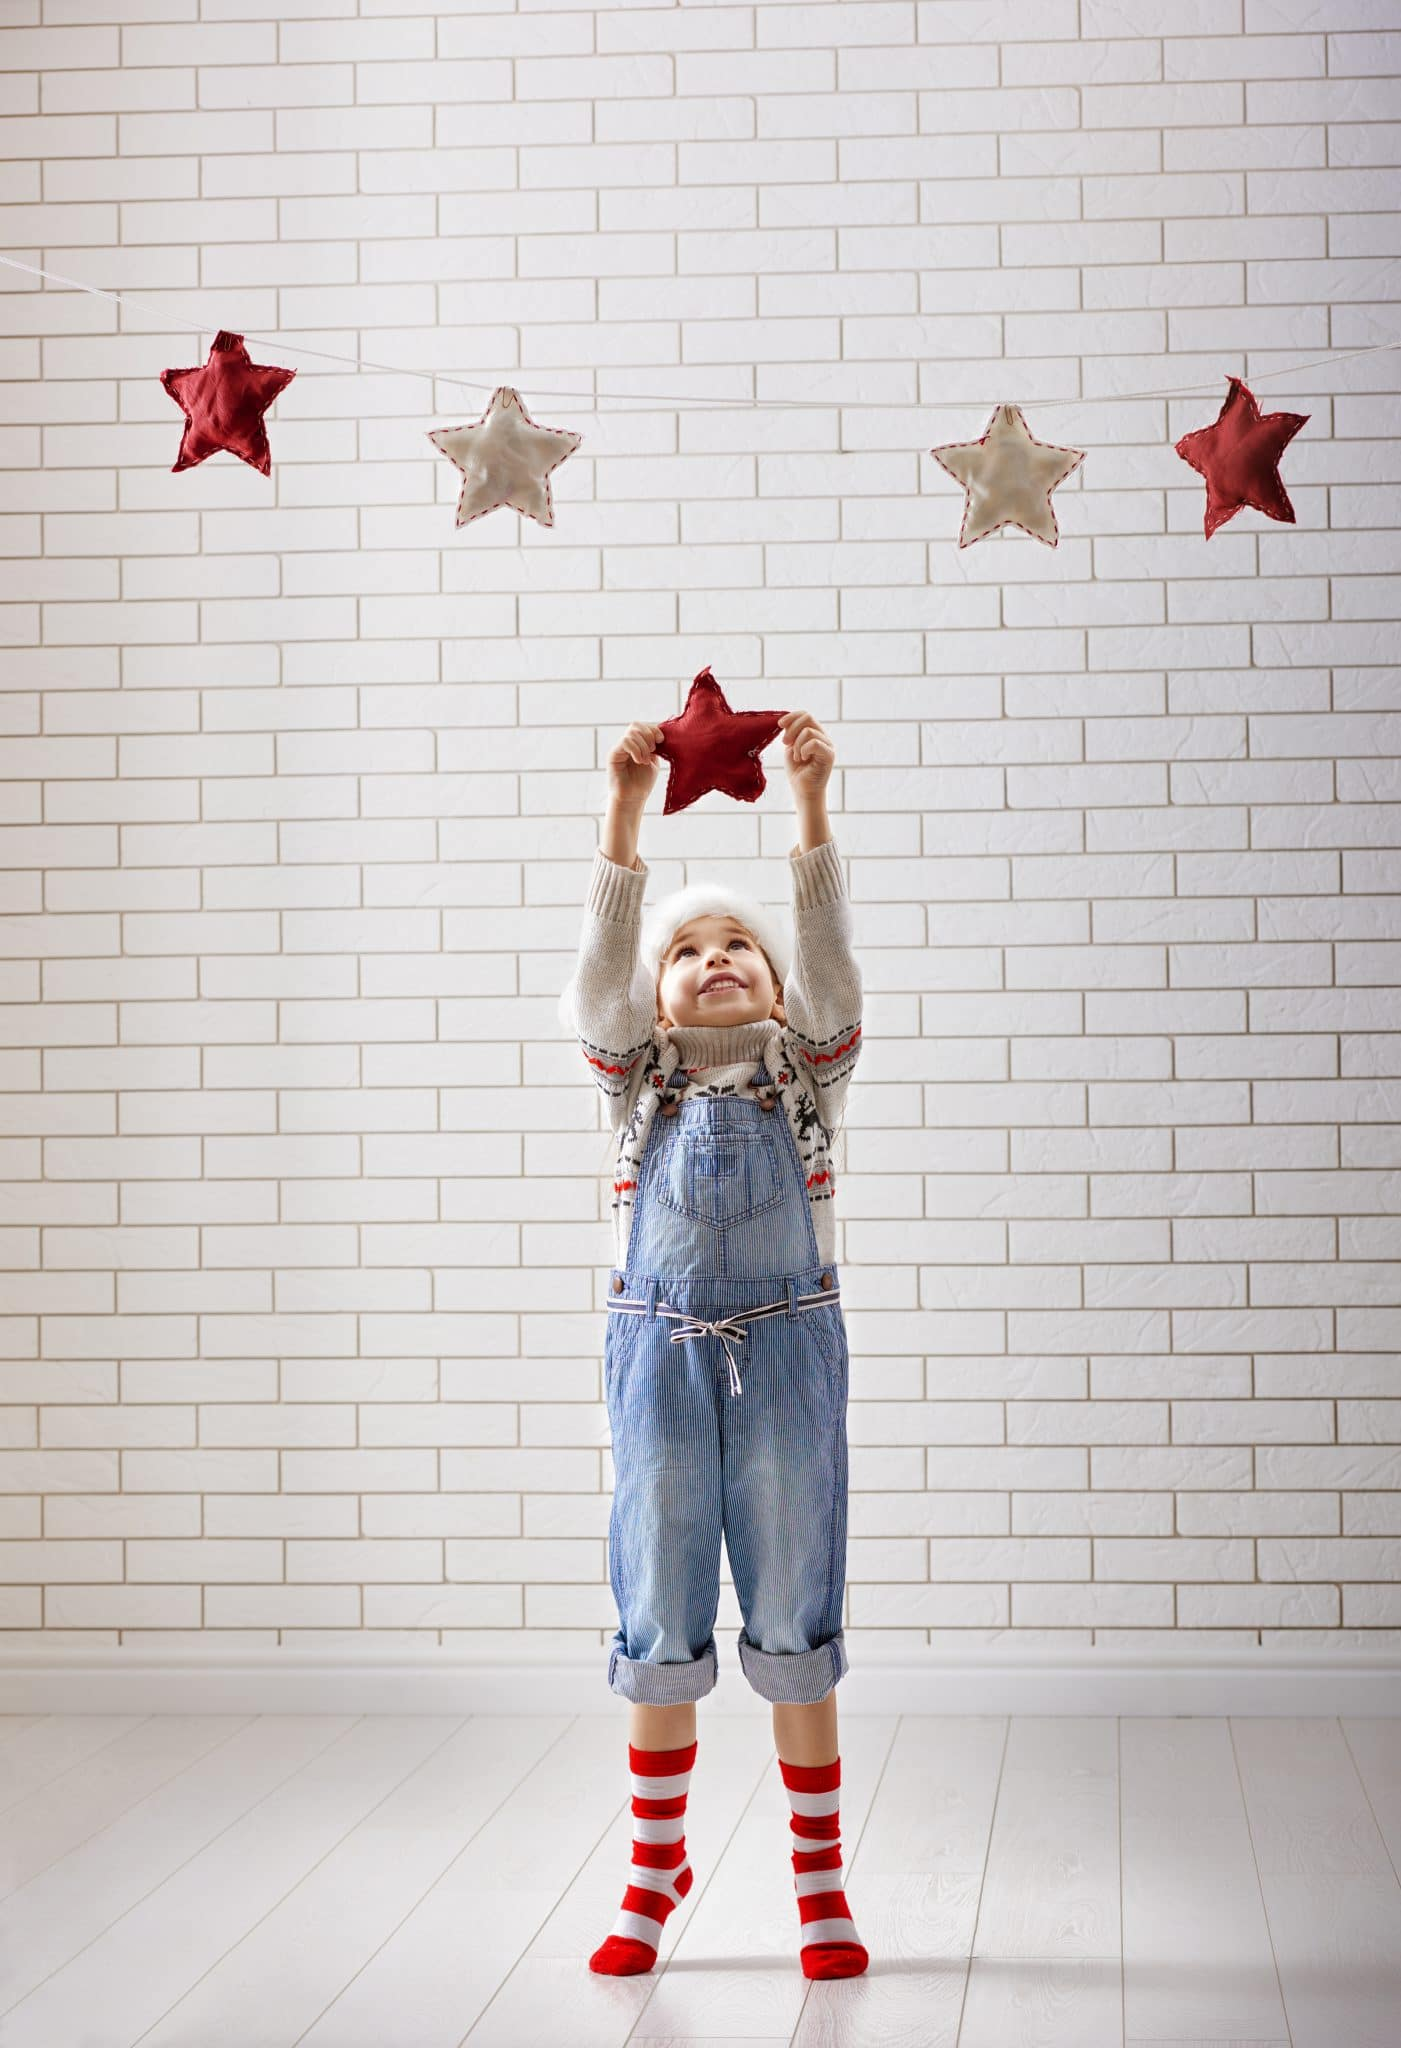 child-hangs-the-stars-PWK7XFB